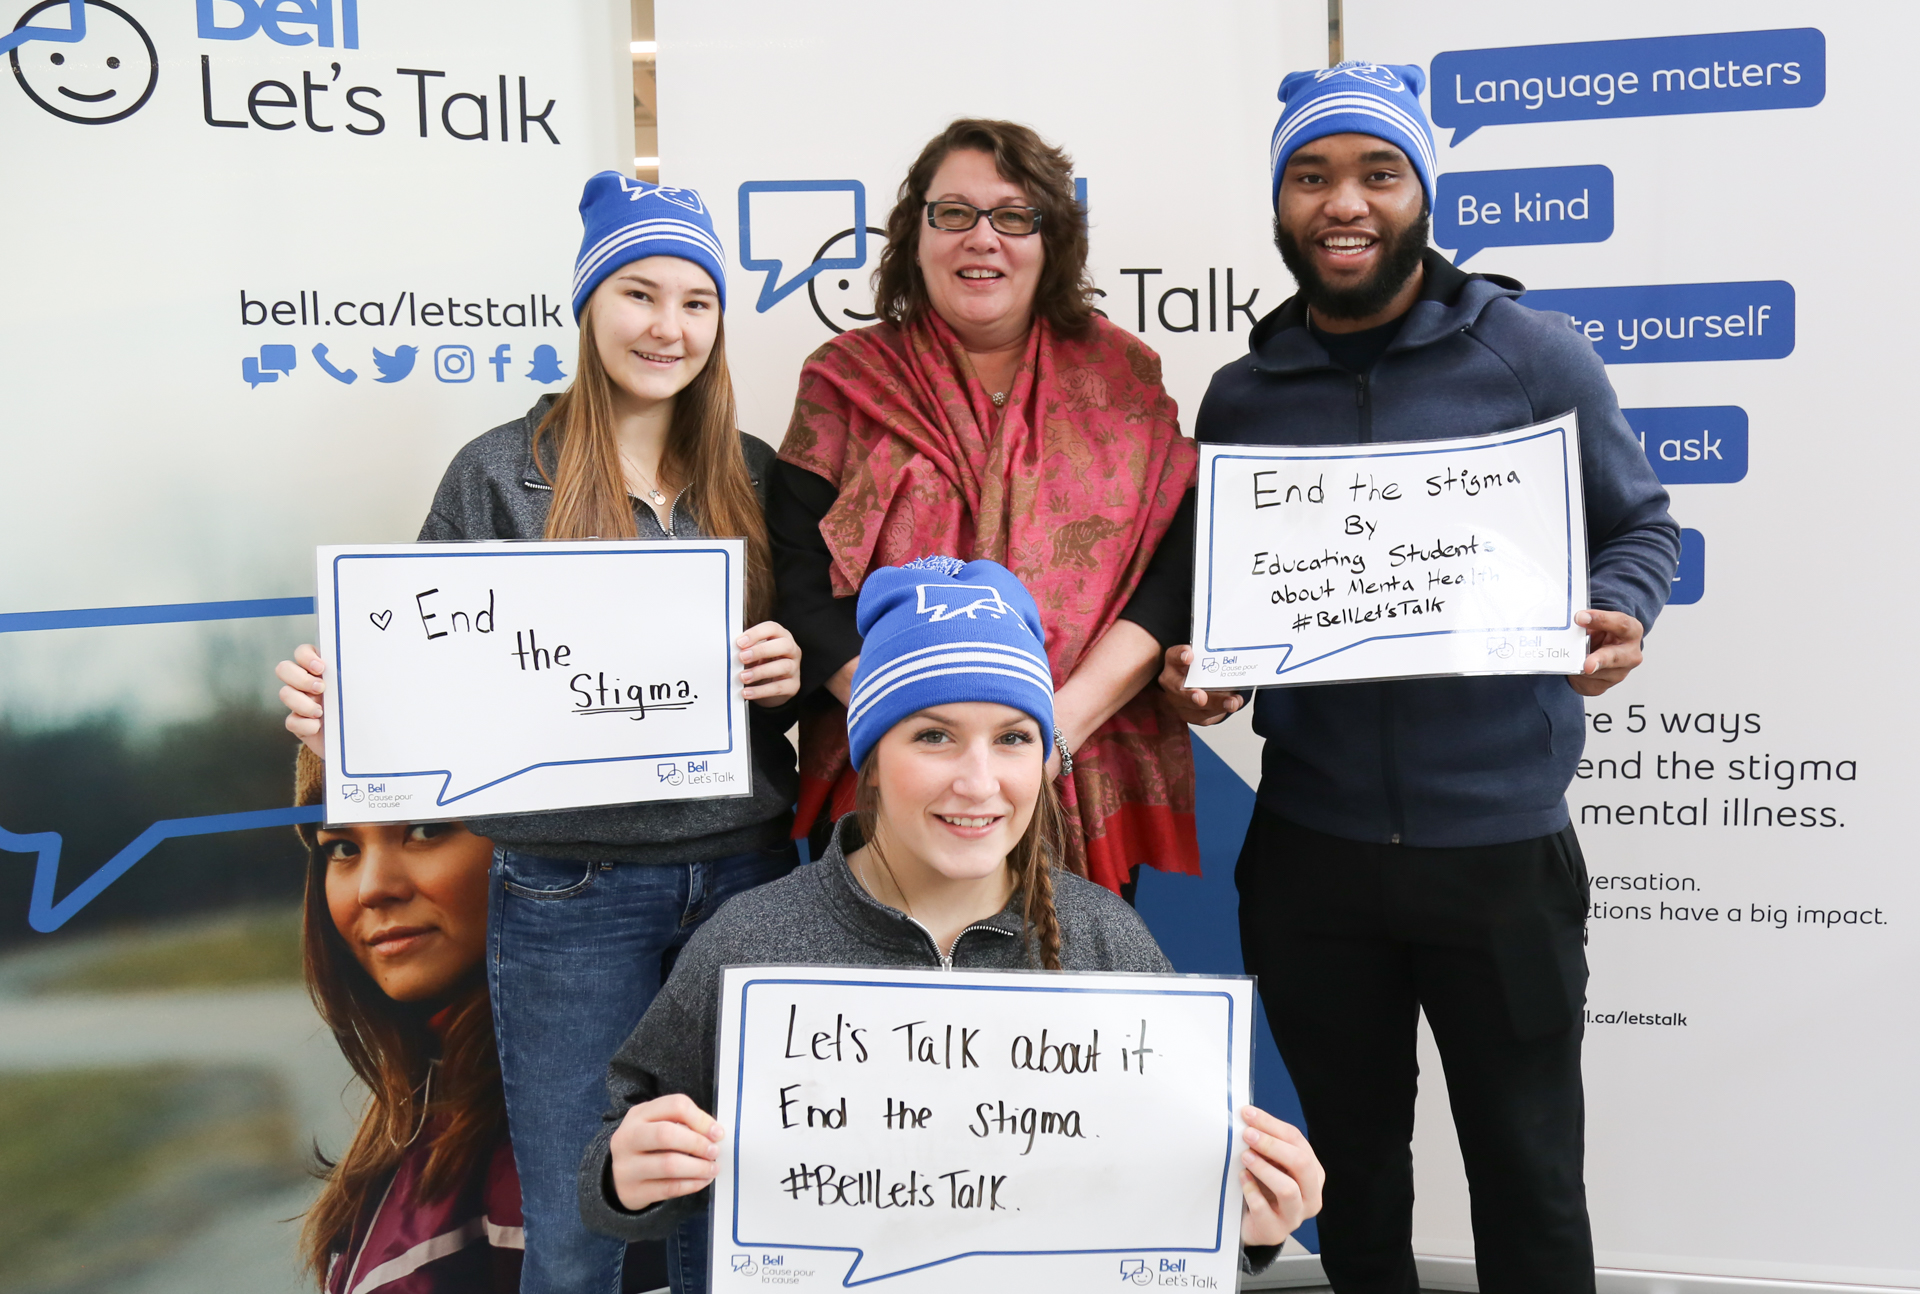 Bell Let's Talk event at Queen's University